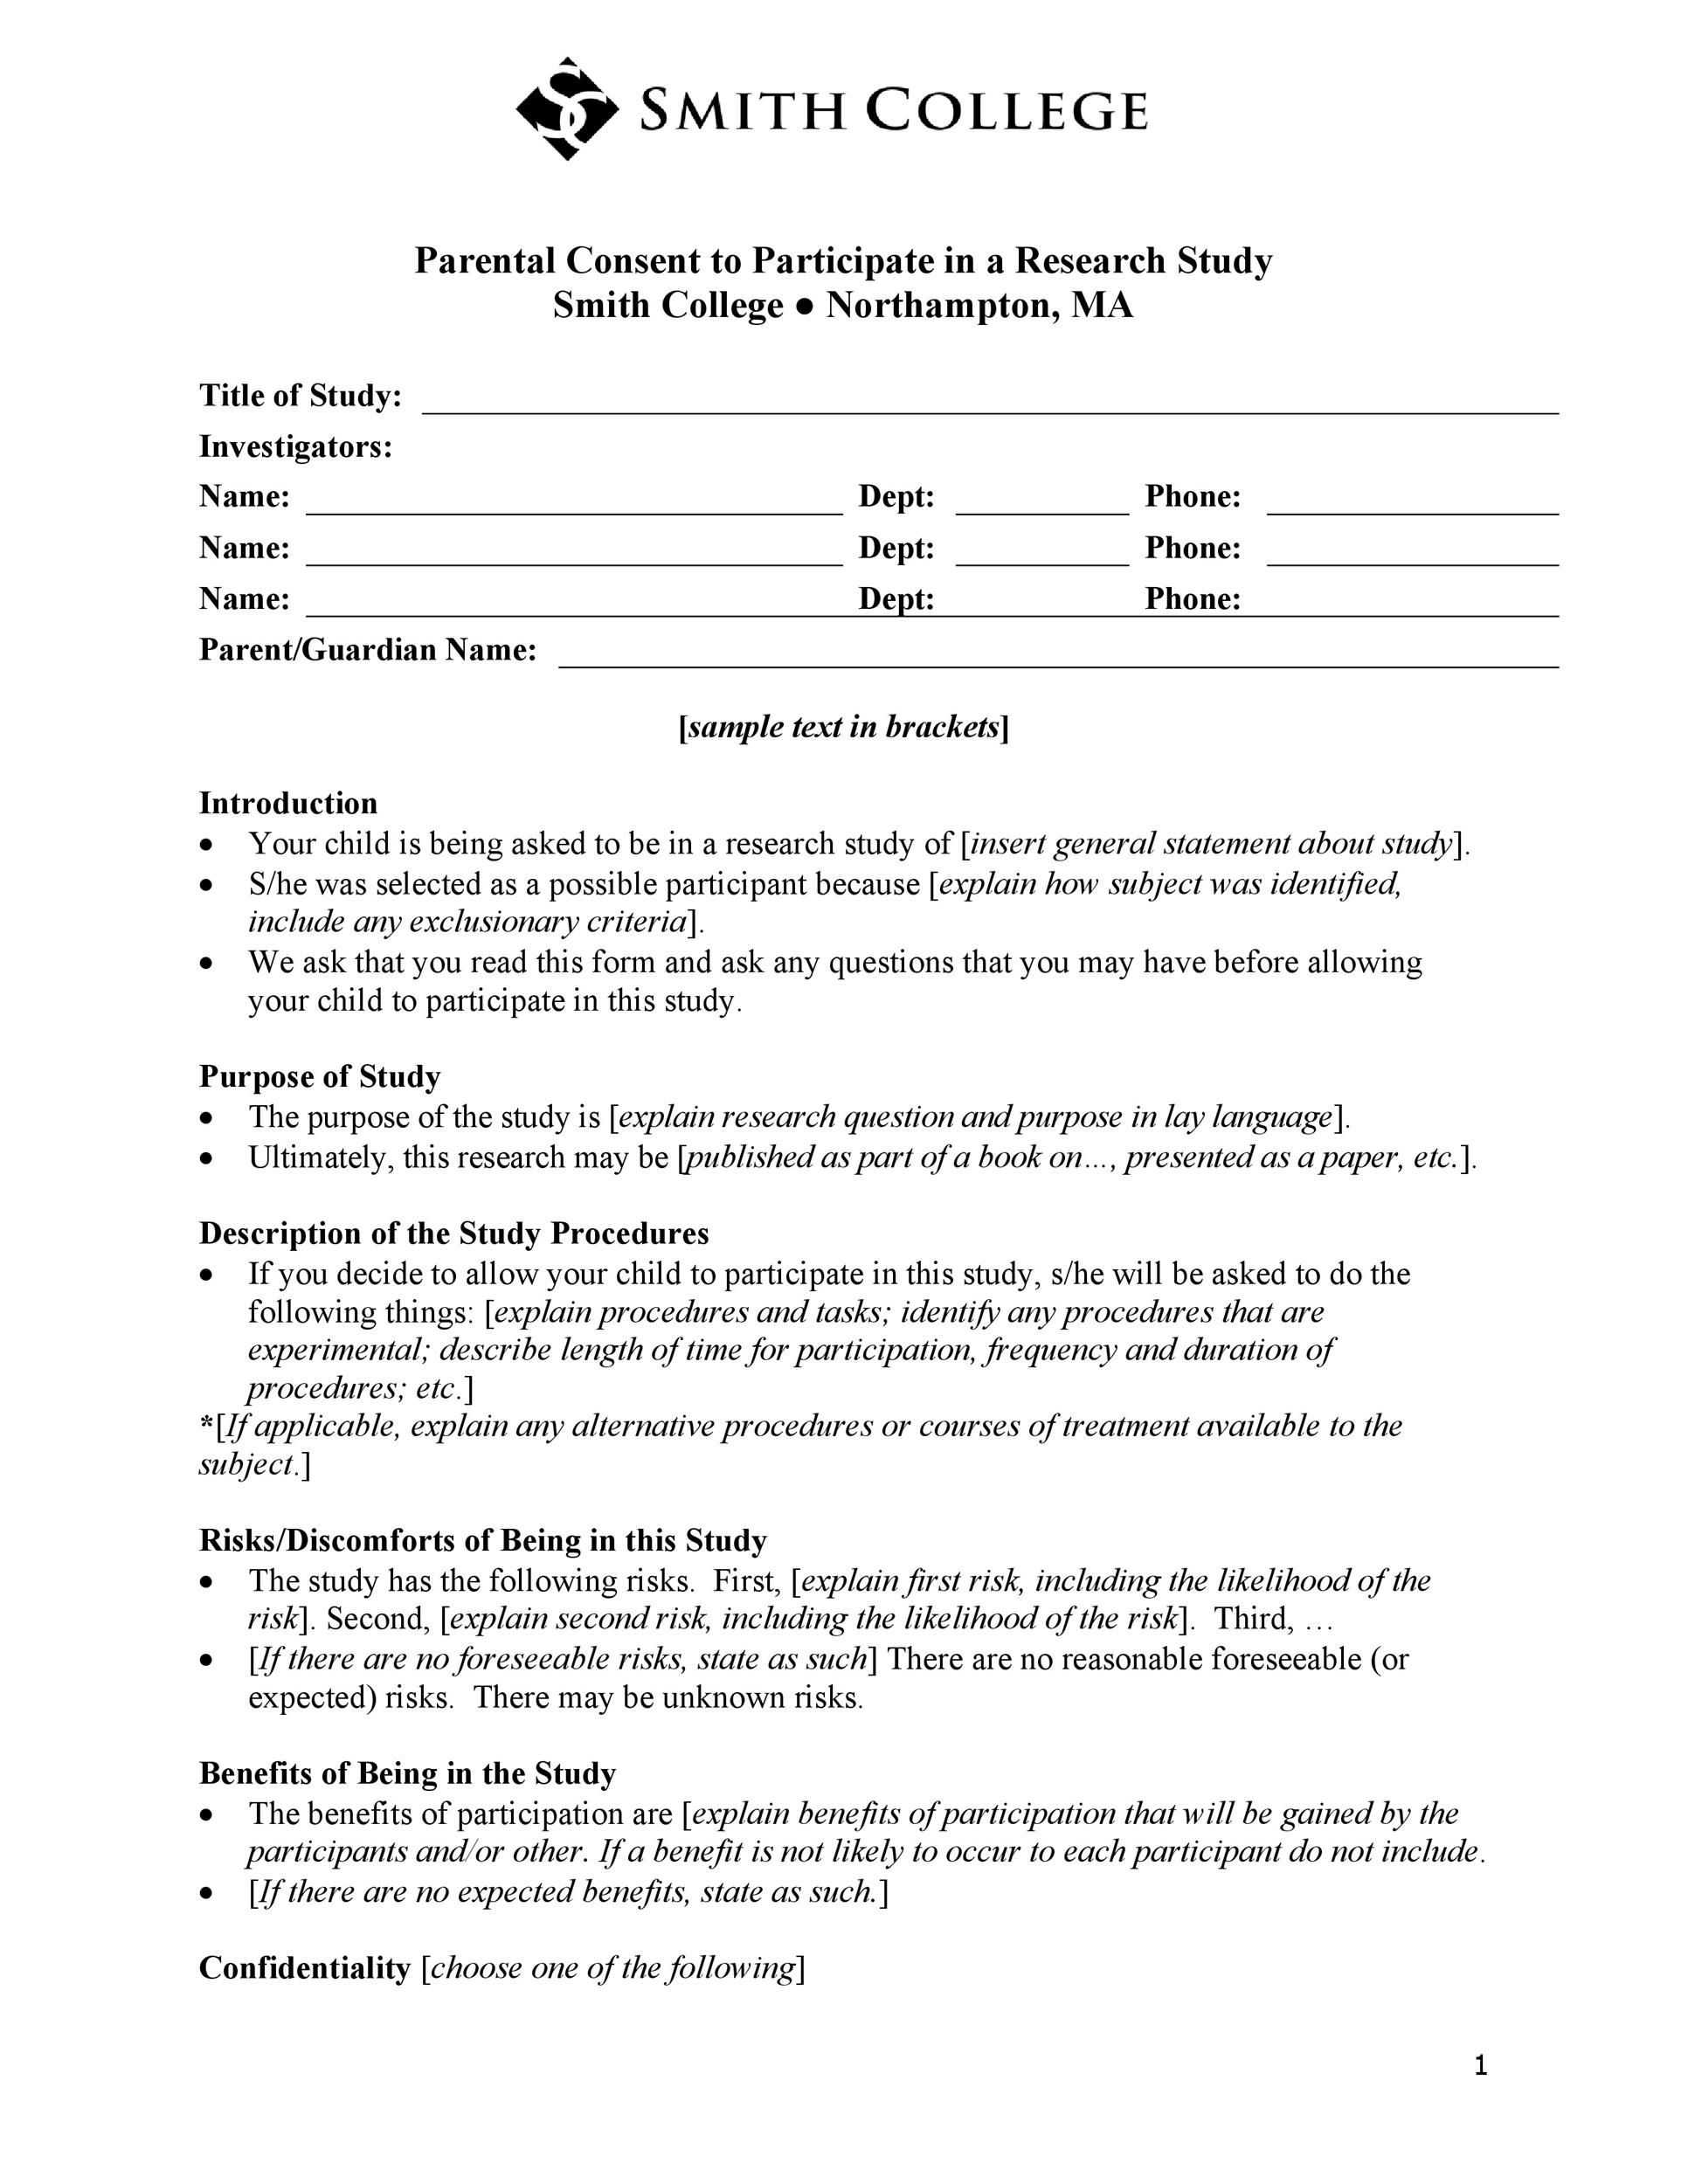 General Media Release Form Template from templatelab.com